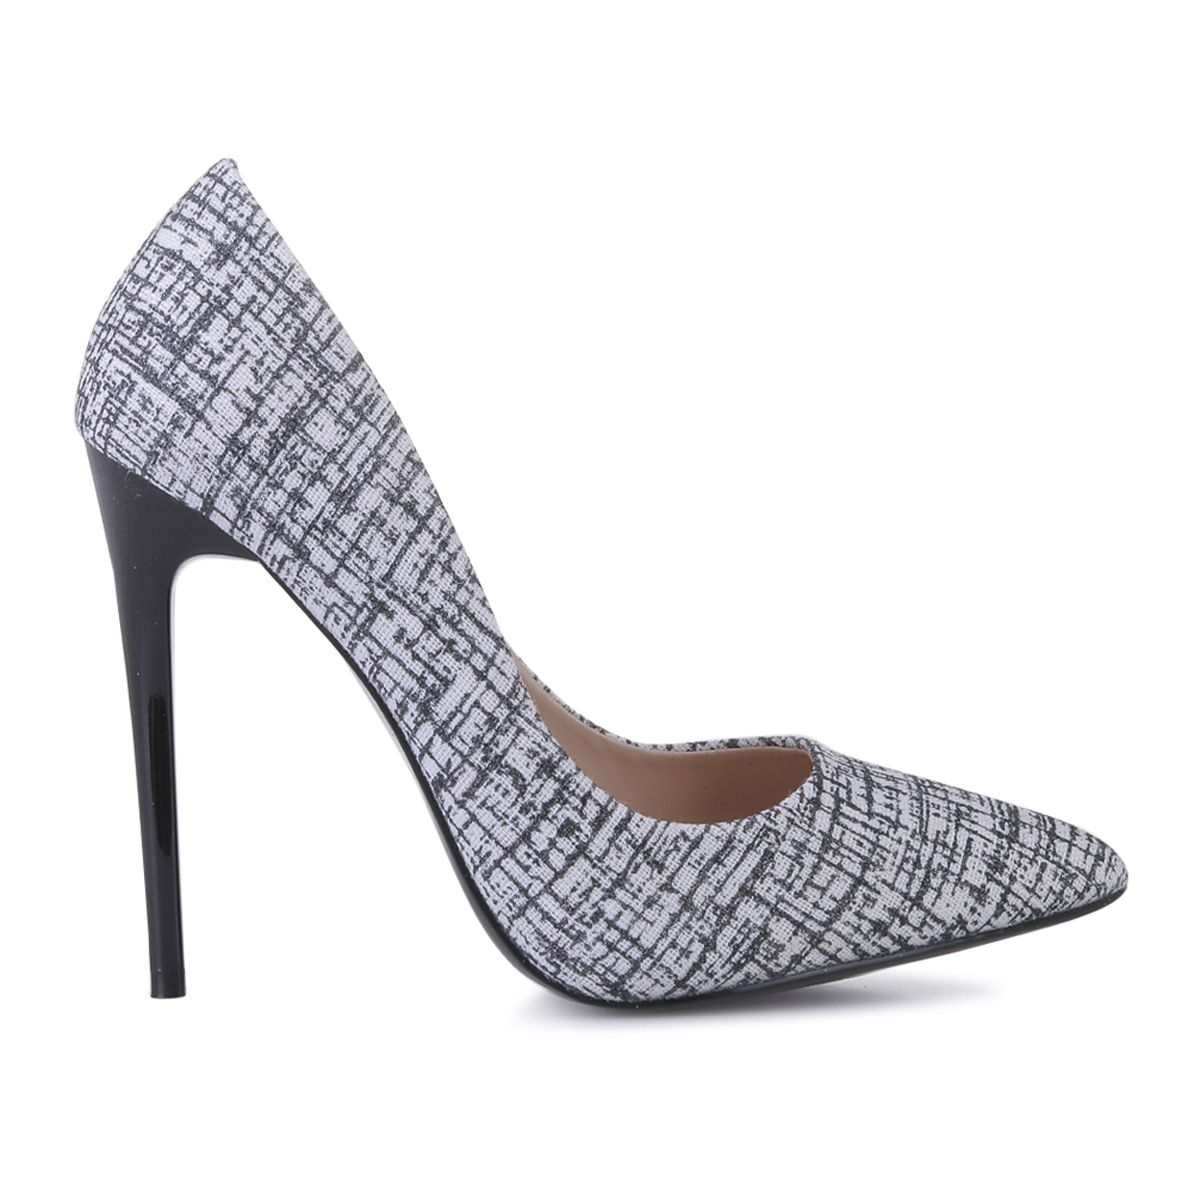 Stilettos noirs en tweed pailletées